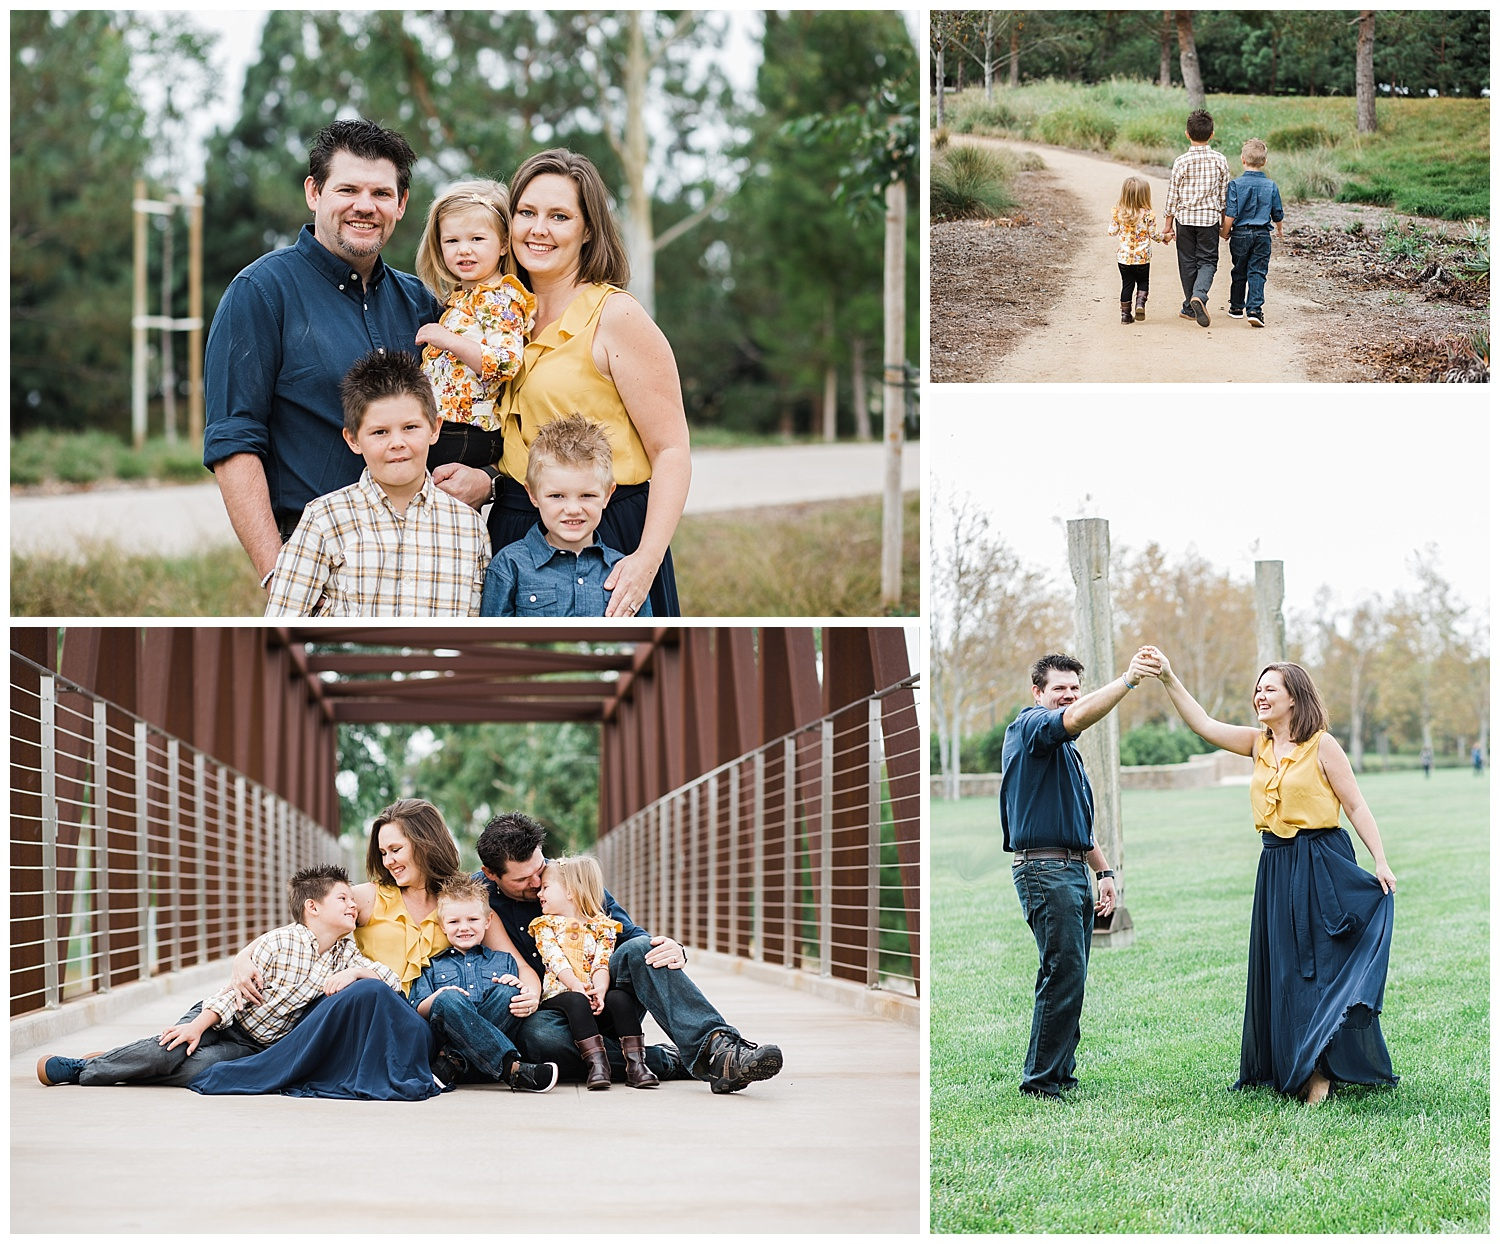 Kari Webb Photography | Orange County Family Photographer | kids walking parents dancing family looking at each other